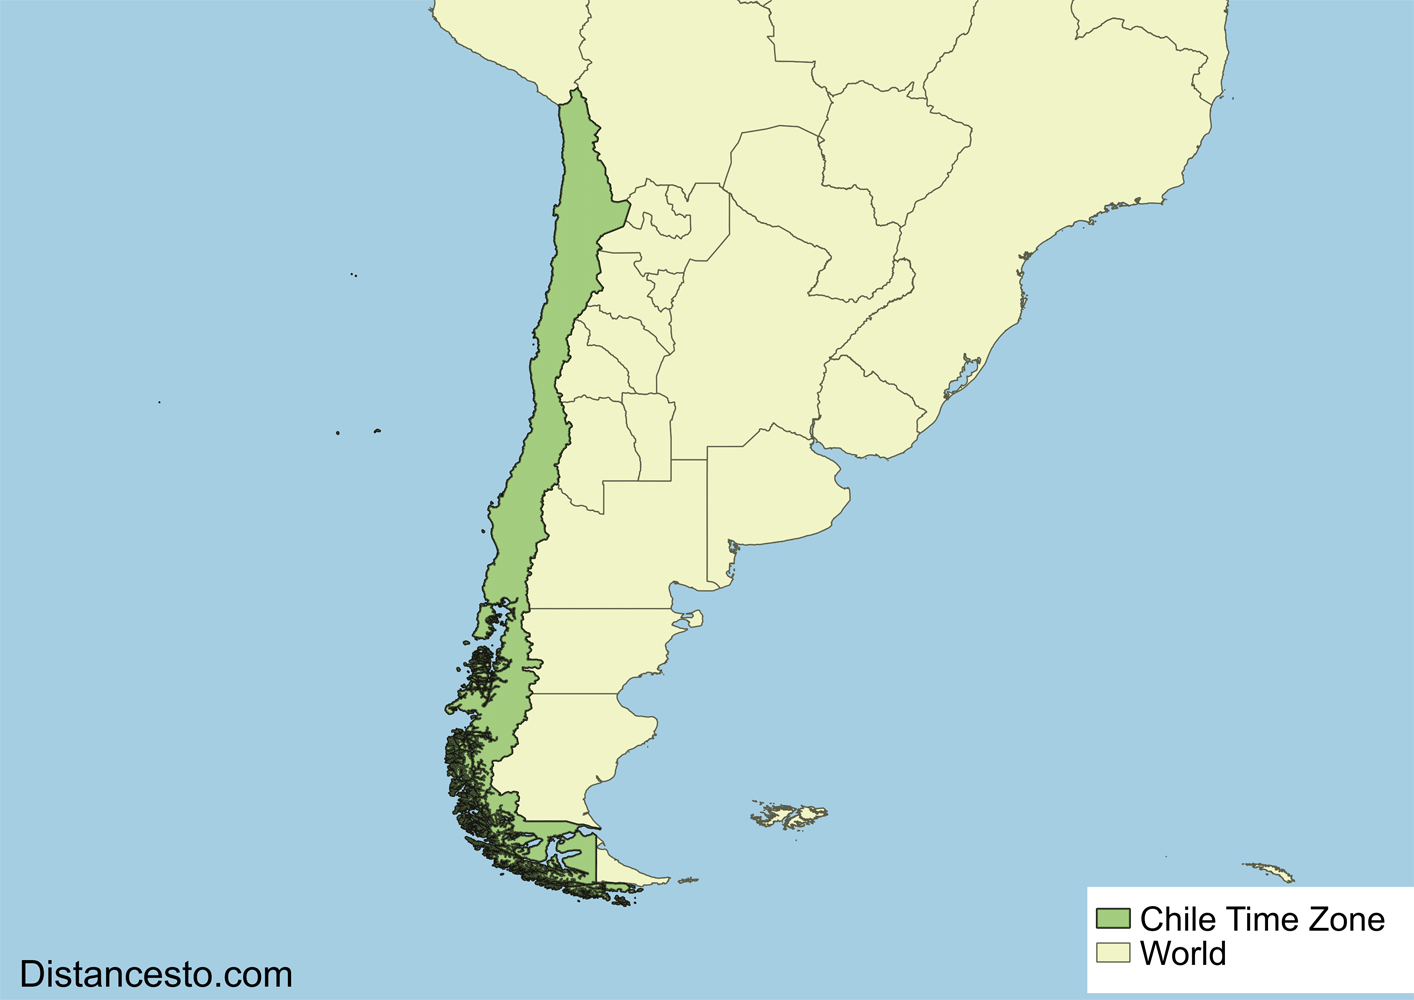 Chile Subway Map.Chile Time Zone Map Stadslucht